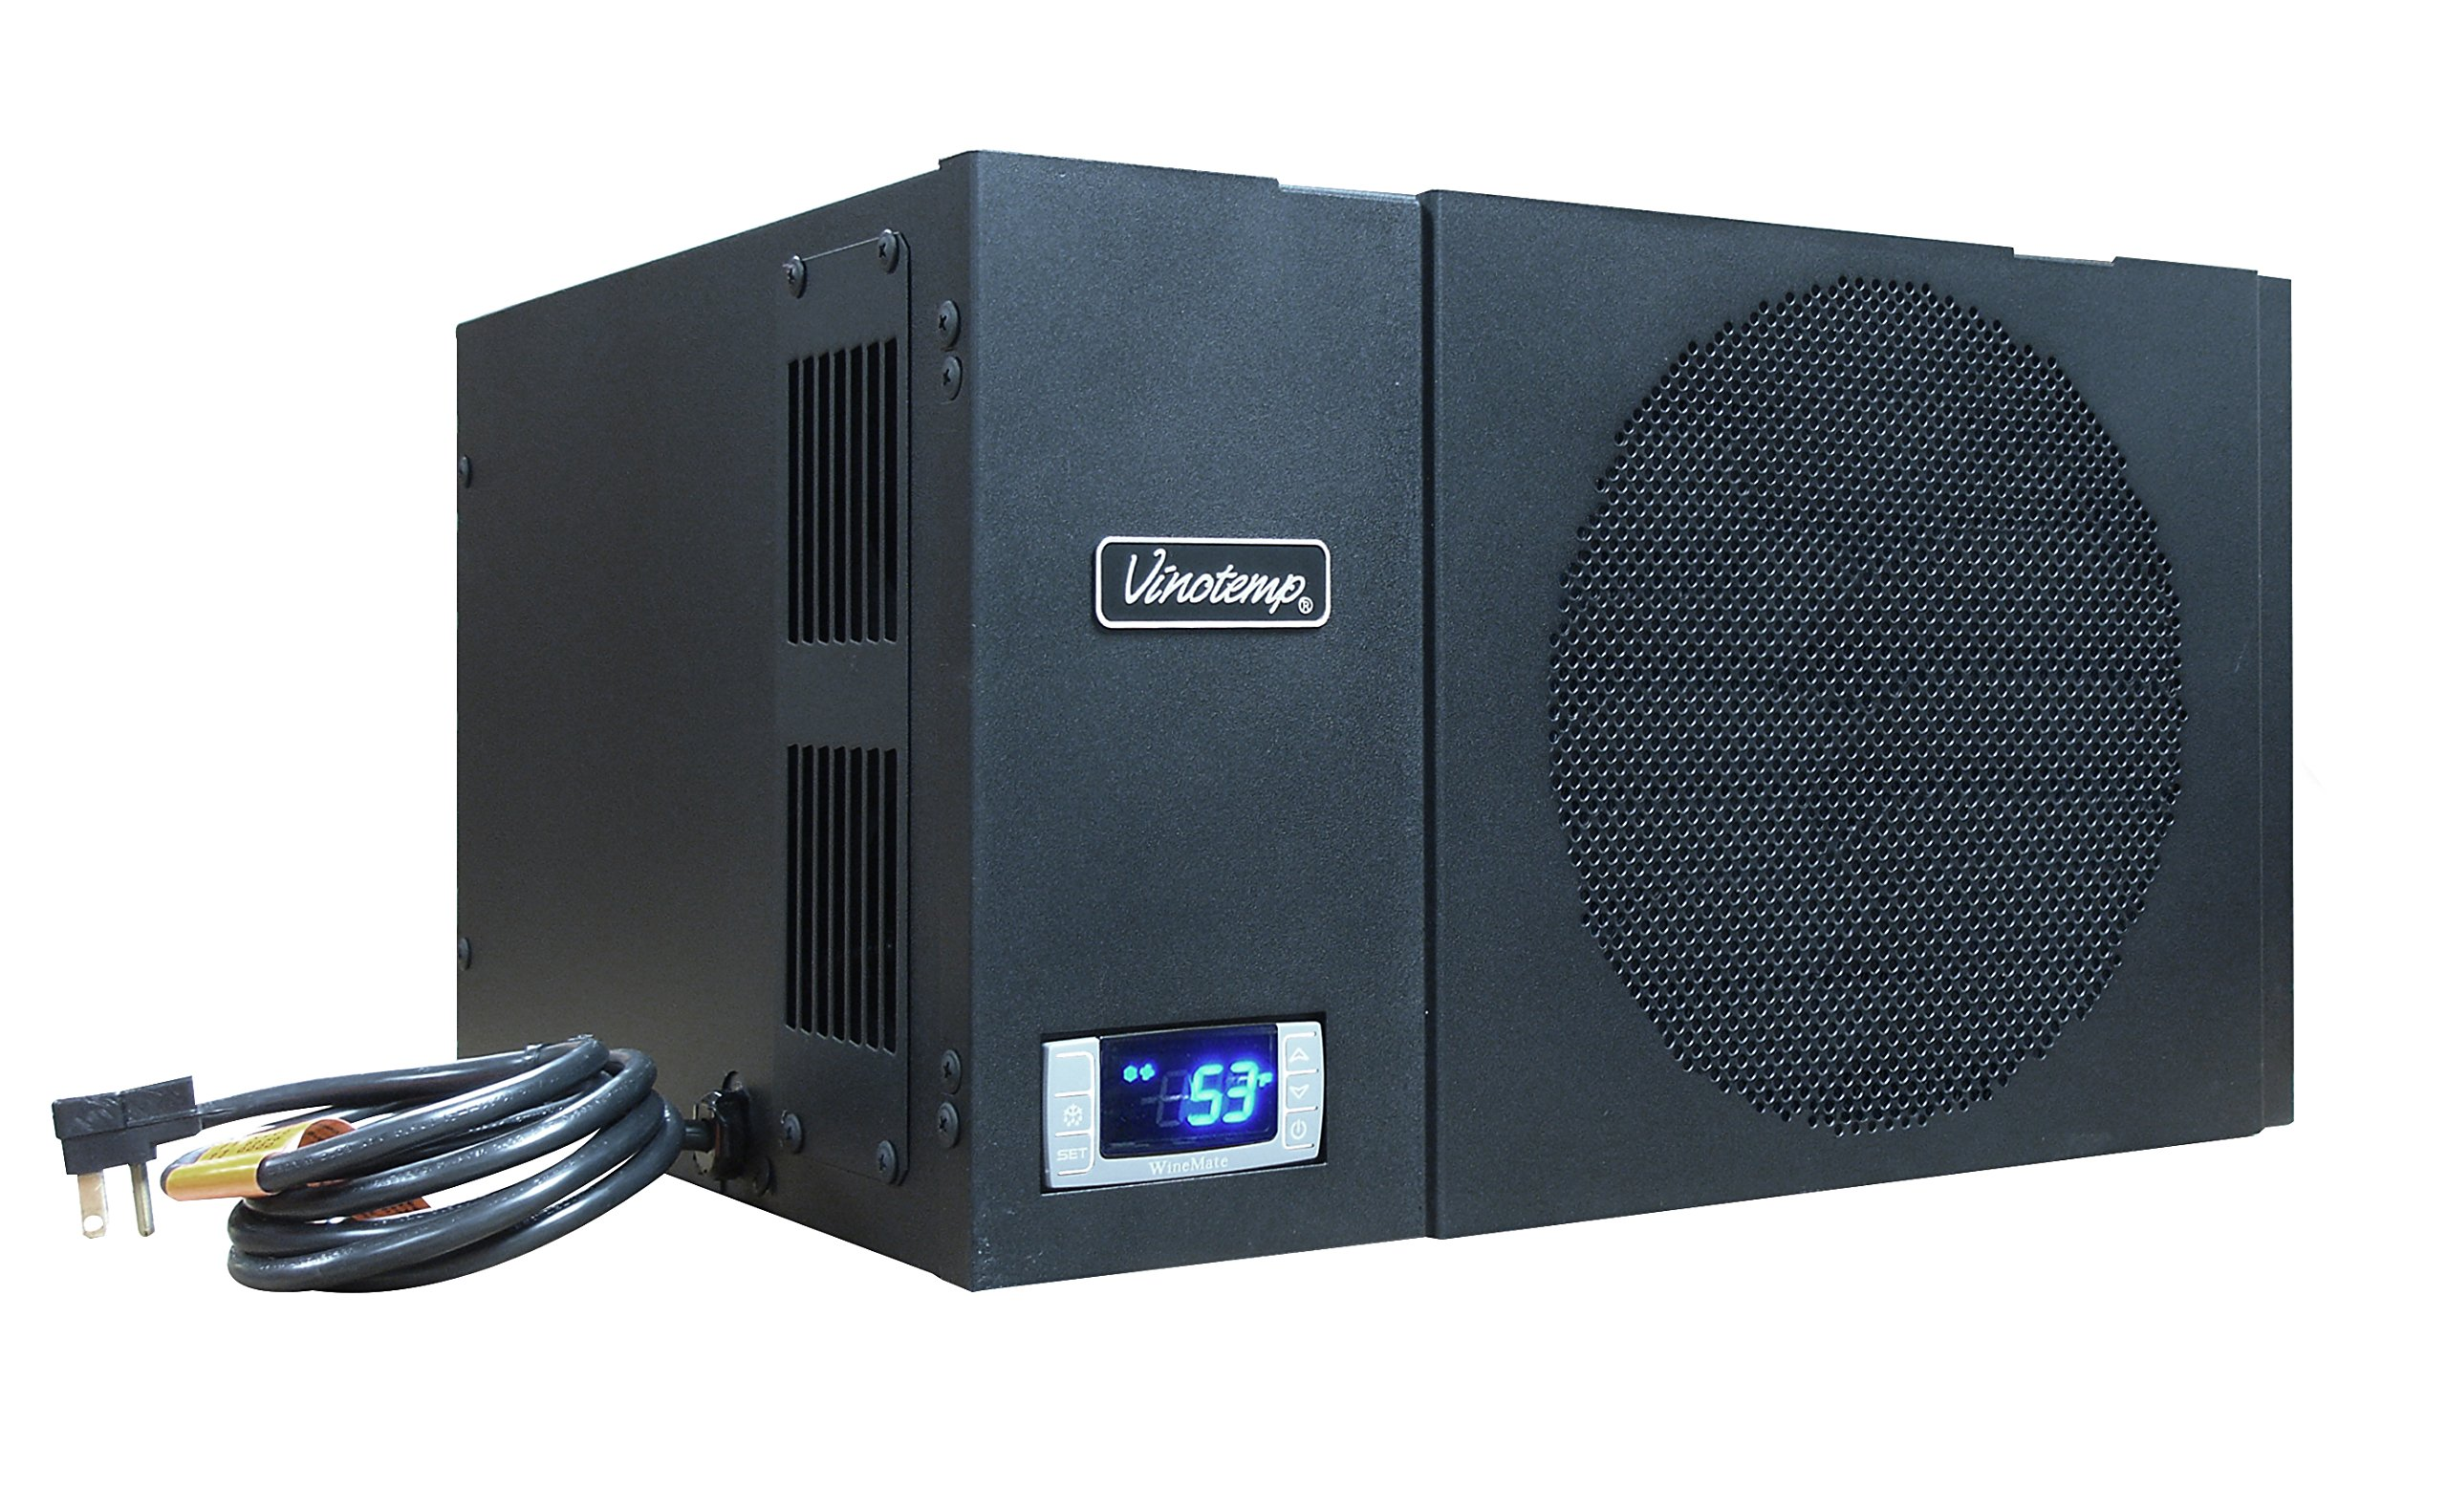 Vinotemp WM-1500-HTD Wine-Mate Self-Contained Cellar Cooling System, Black